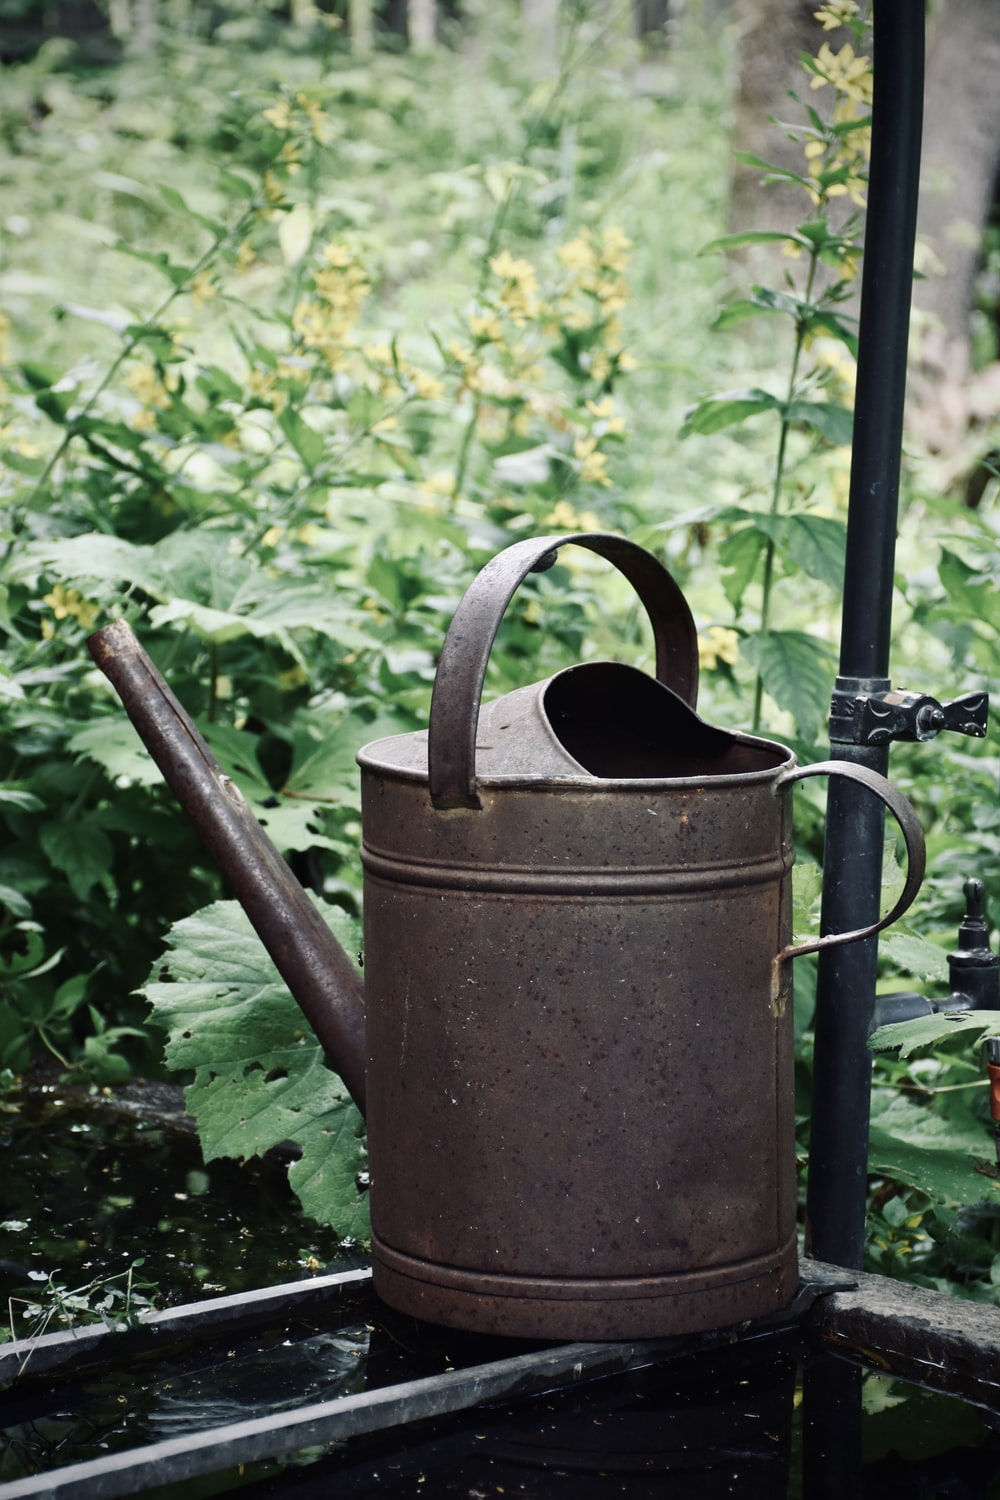 brown steel watering can on green grass during daytime